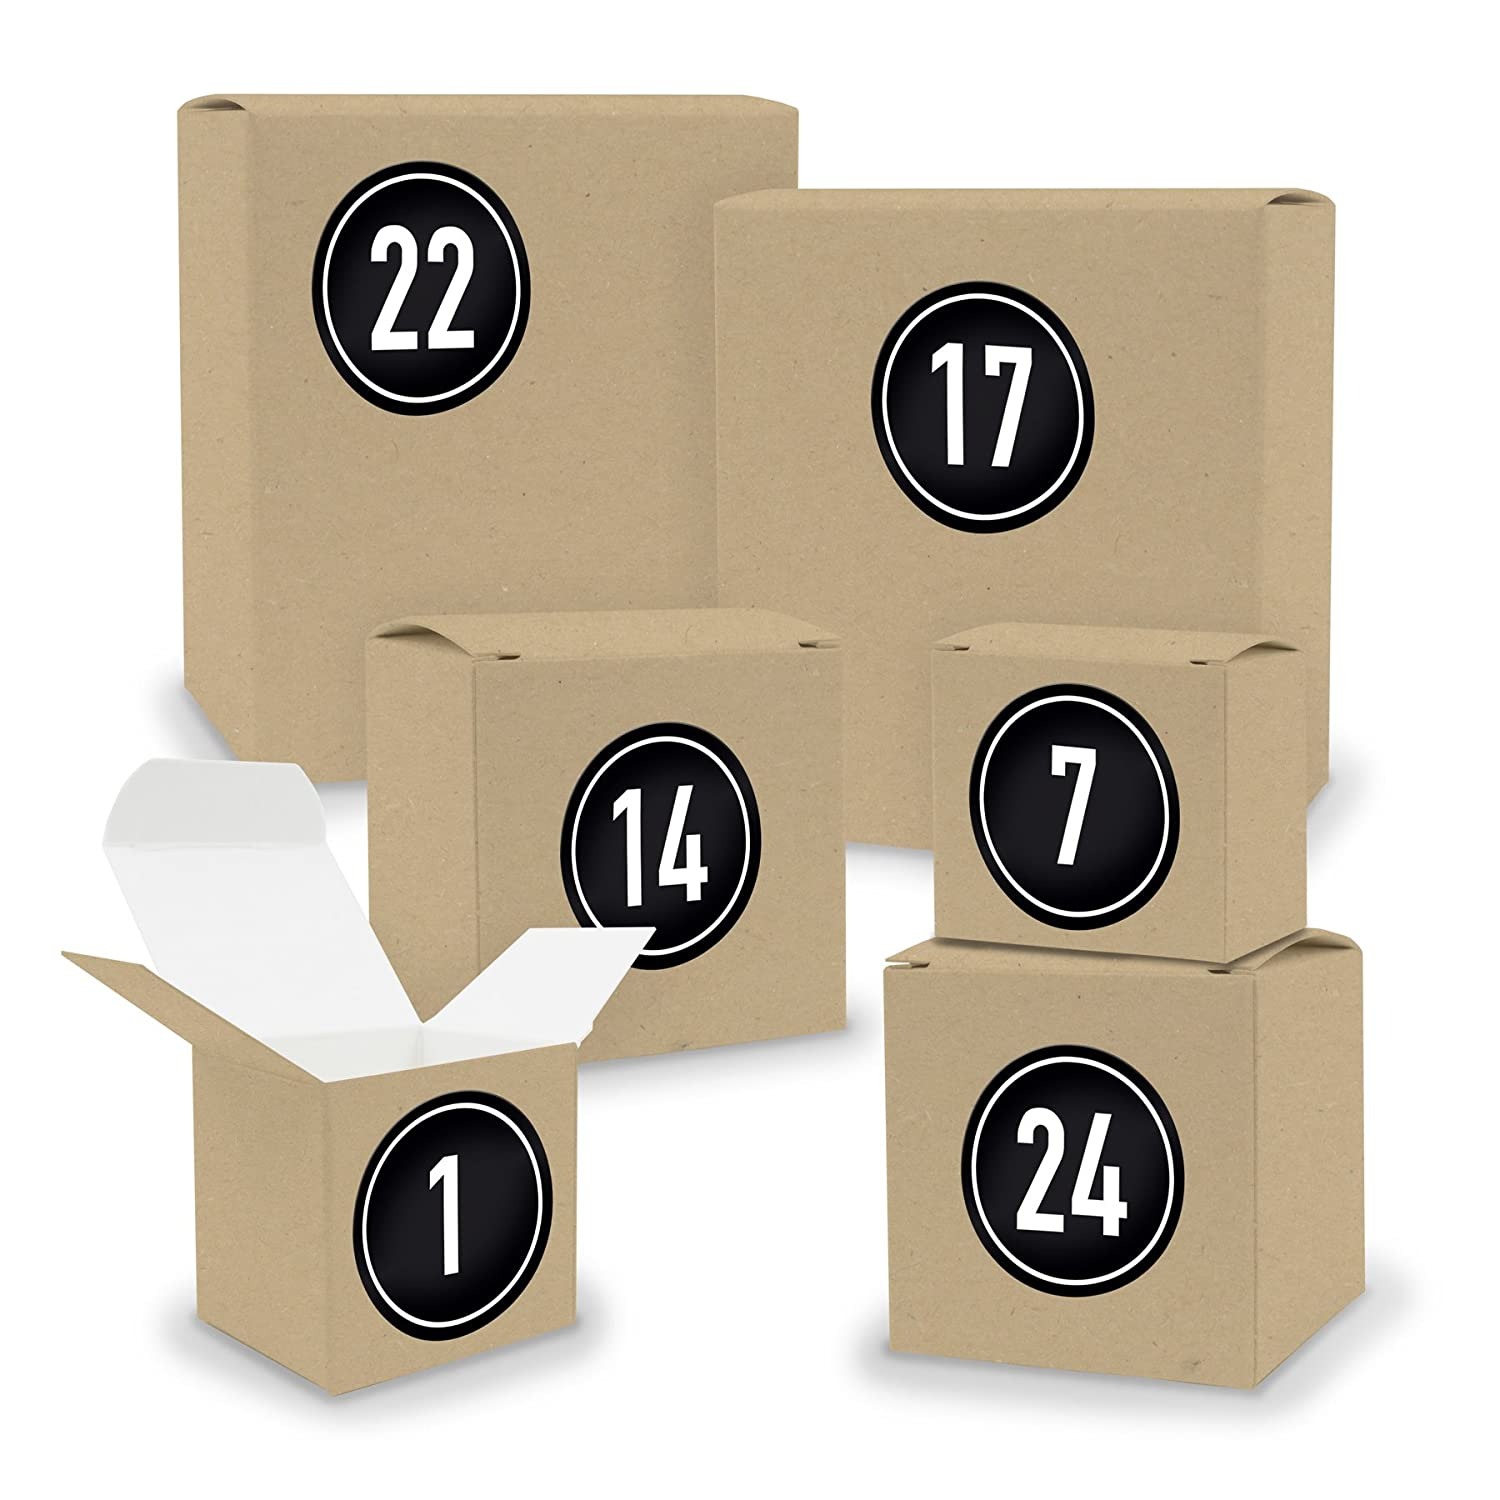 DIY Itenga advent calendar set v02 to fill 24 boxes square cube mixed brown kraft carton and number stickers Motiv Z01 Blautöne Stempeldesign